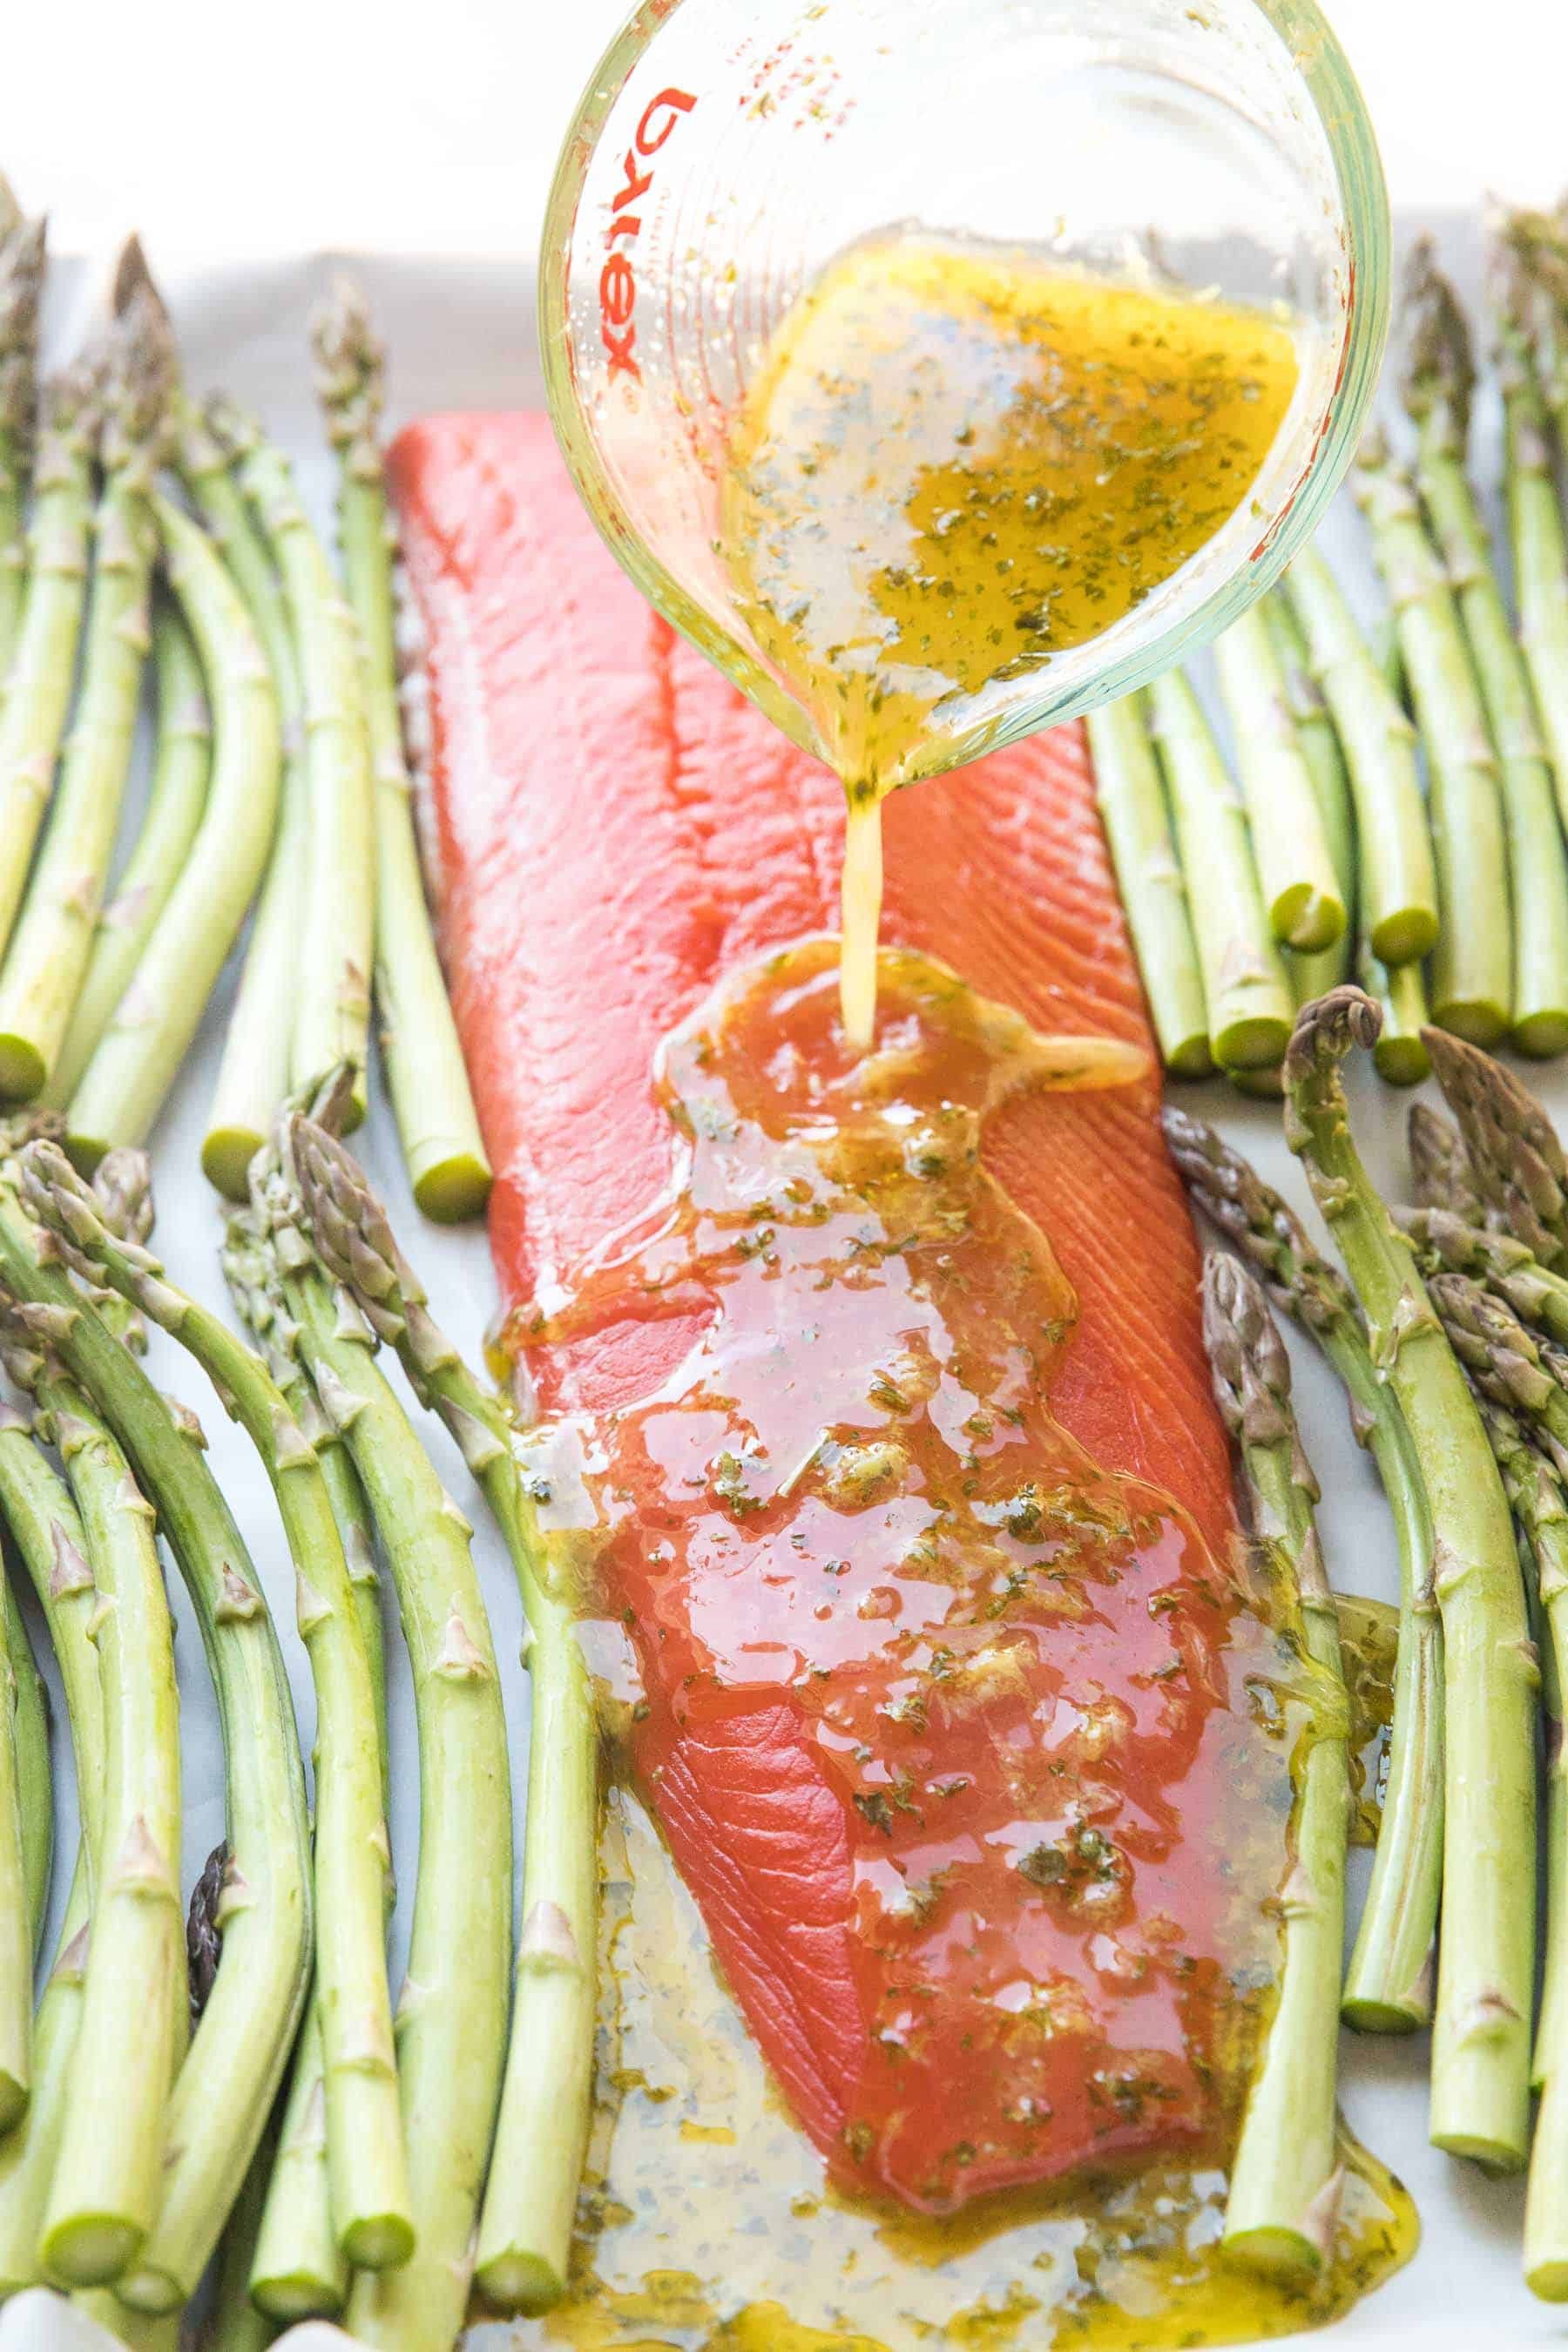 pouring marinade over sheet pan salmon and asparagus dinner